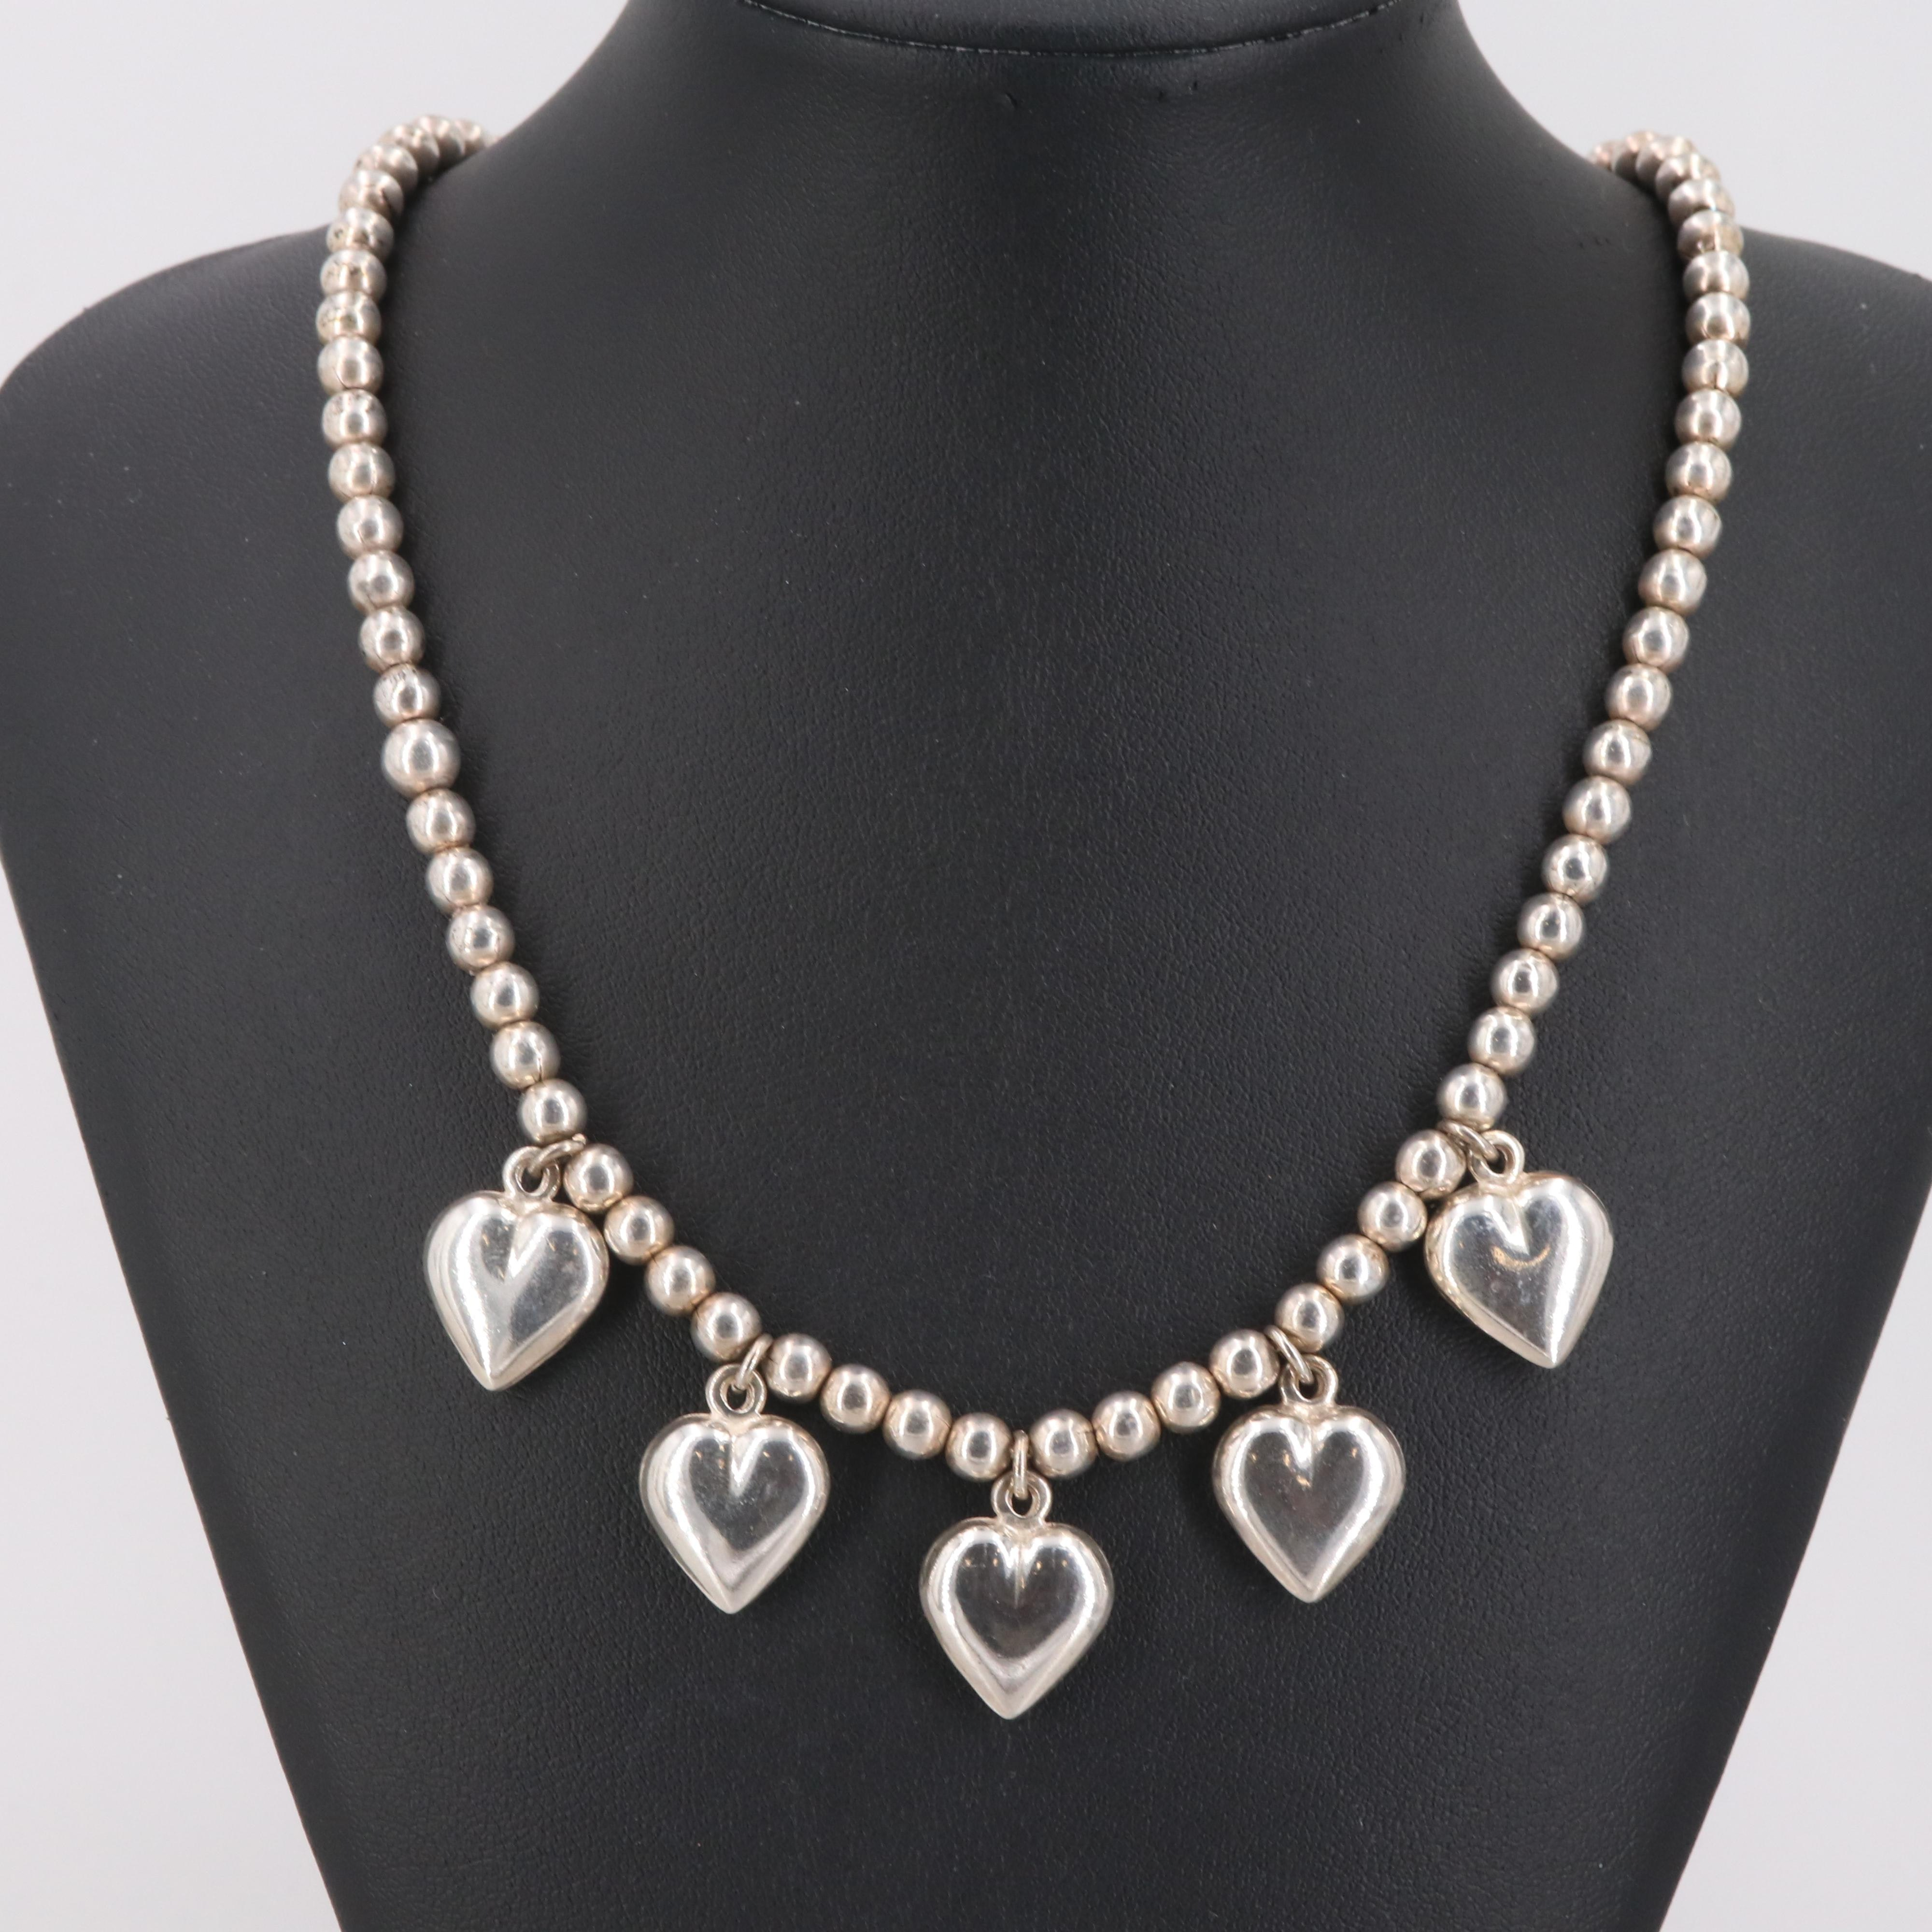 Sterling Silver Necklace with Heart Motif Pendants